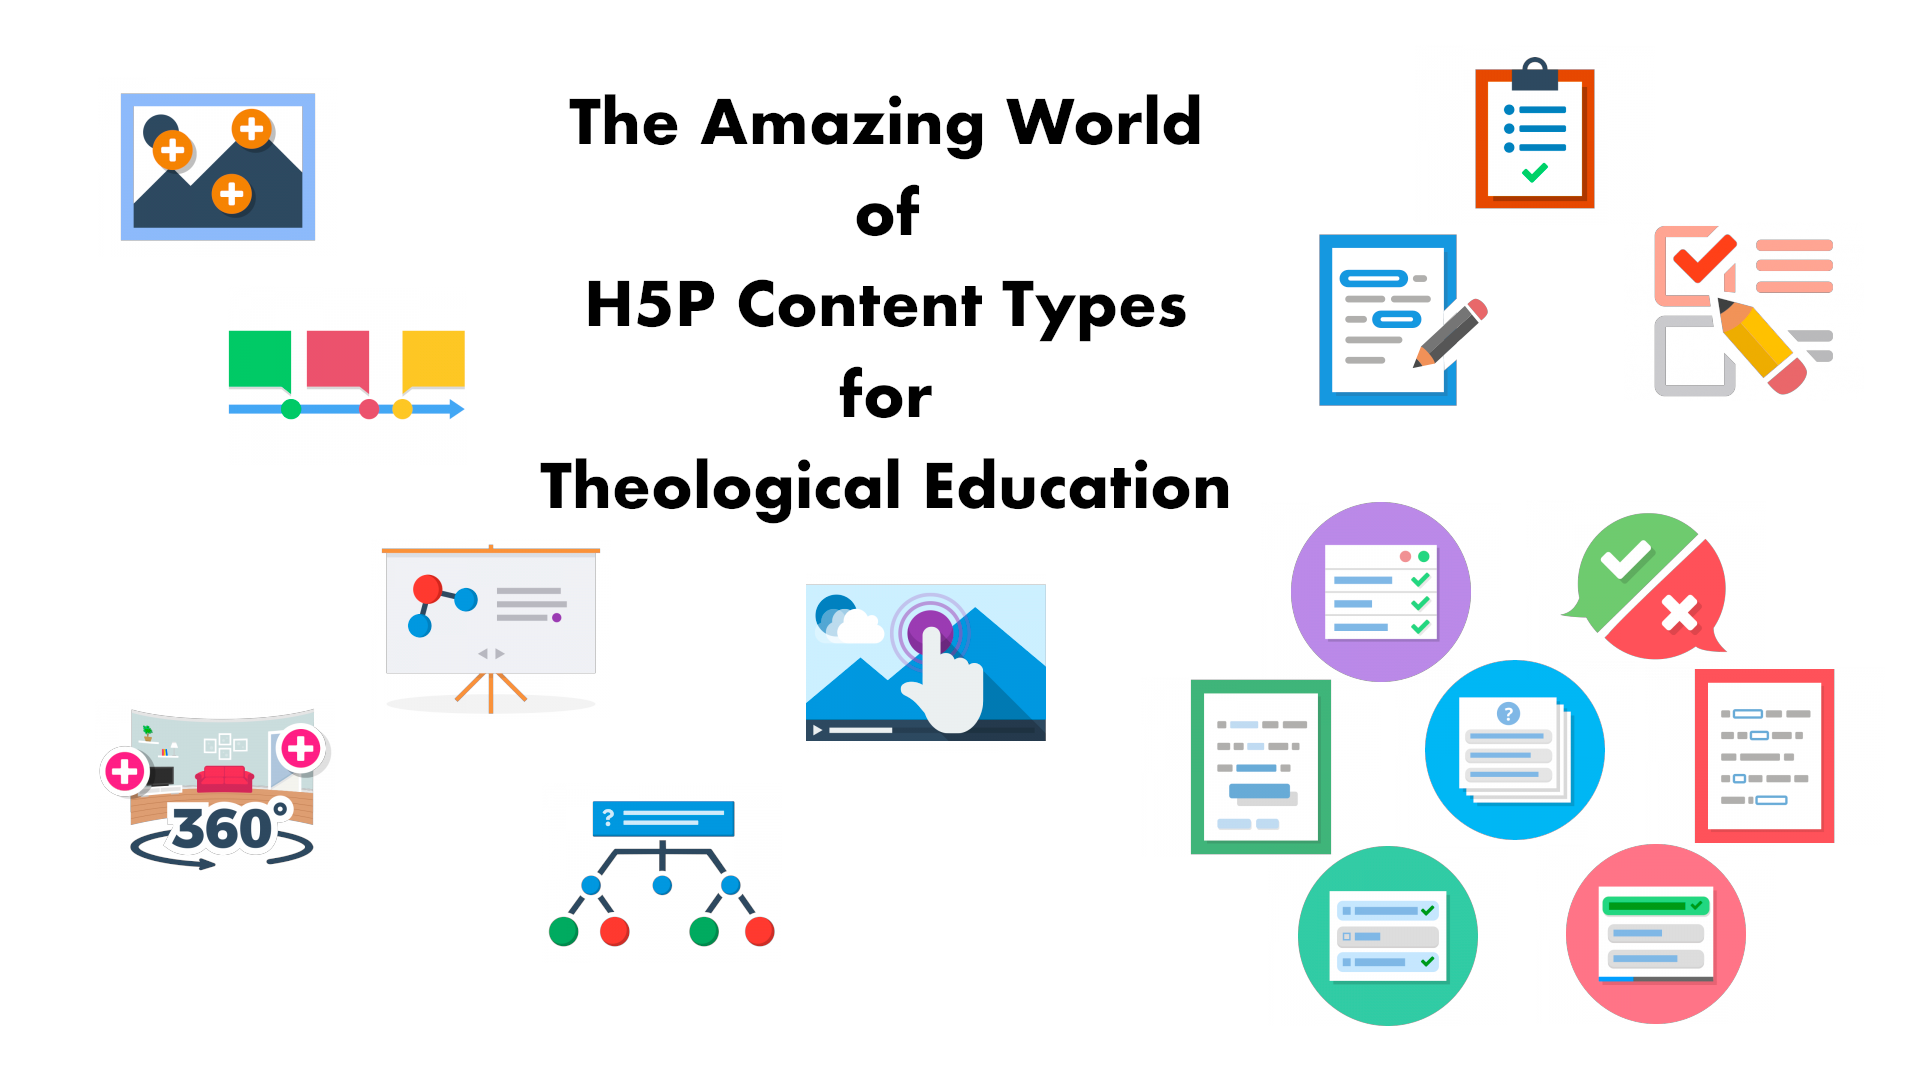 The Amazing World of H5P Content Types for Theological Education